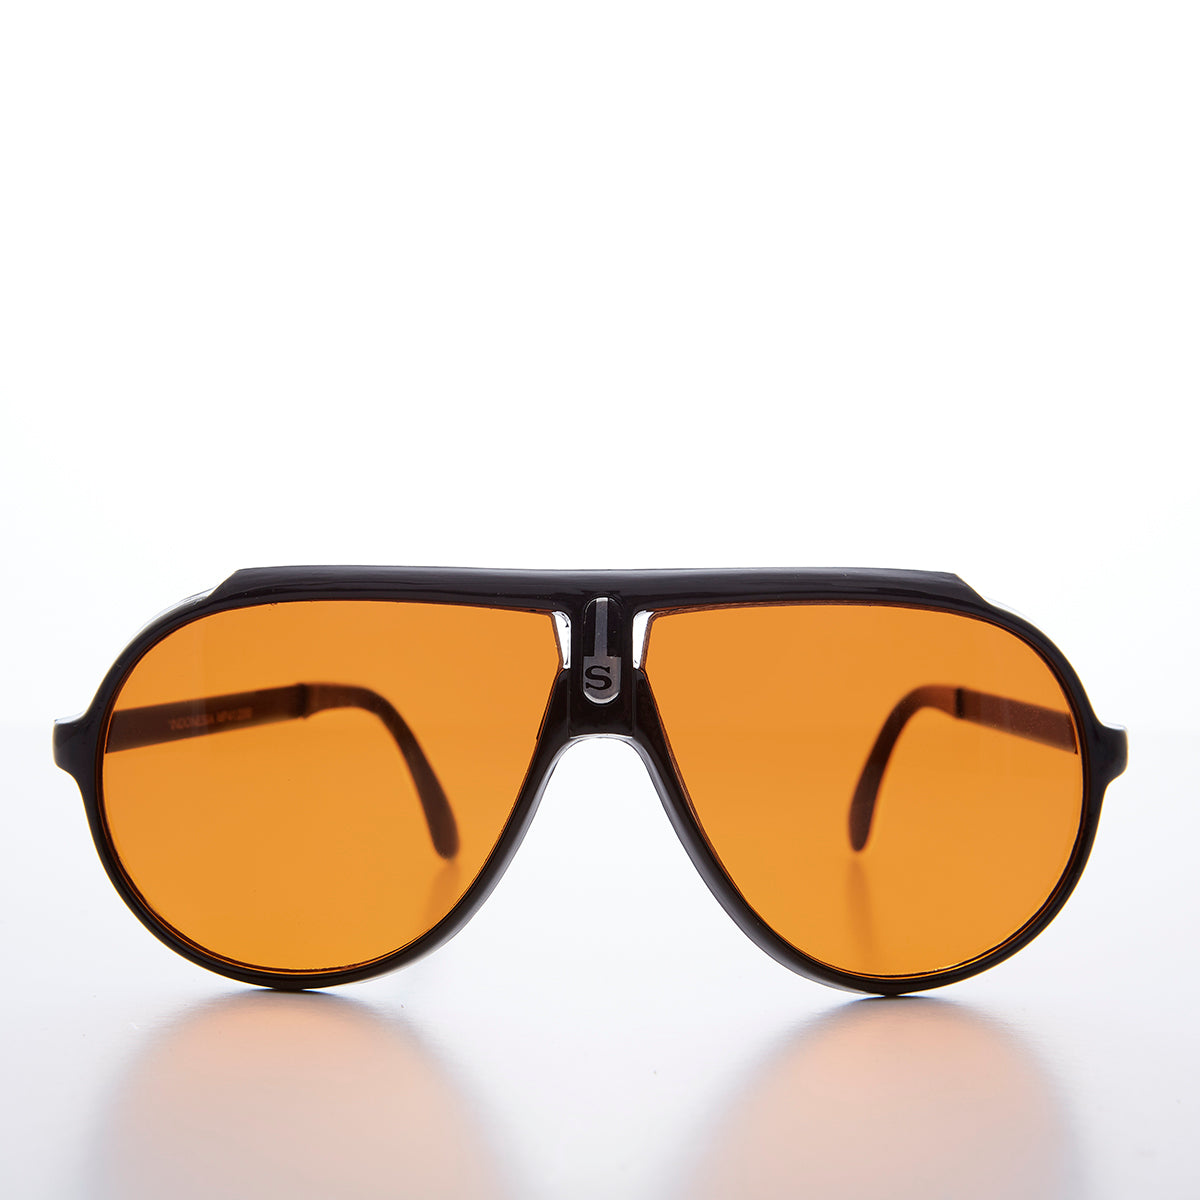 2105aebba6 Very 80s Aviator Orange Blue Blocker Lens Vintage Sunglass - Rocky ...